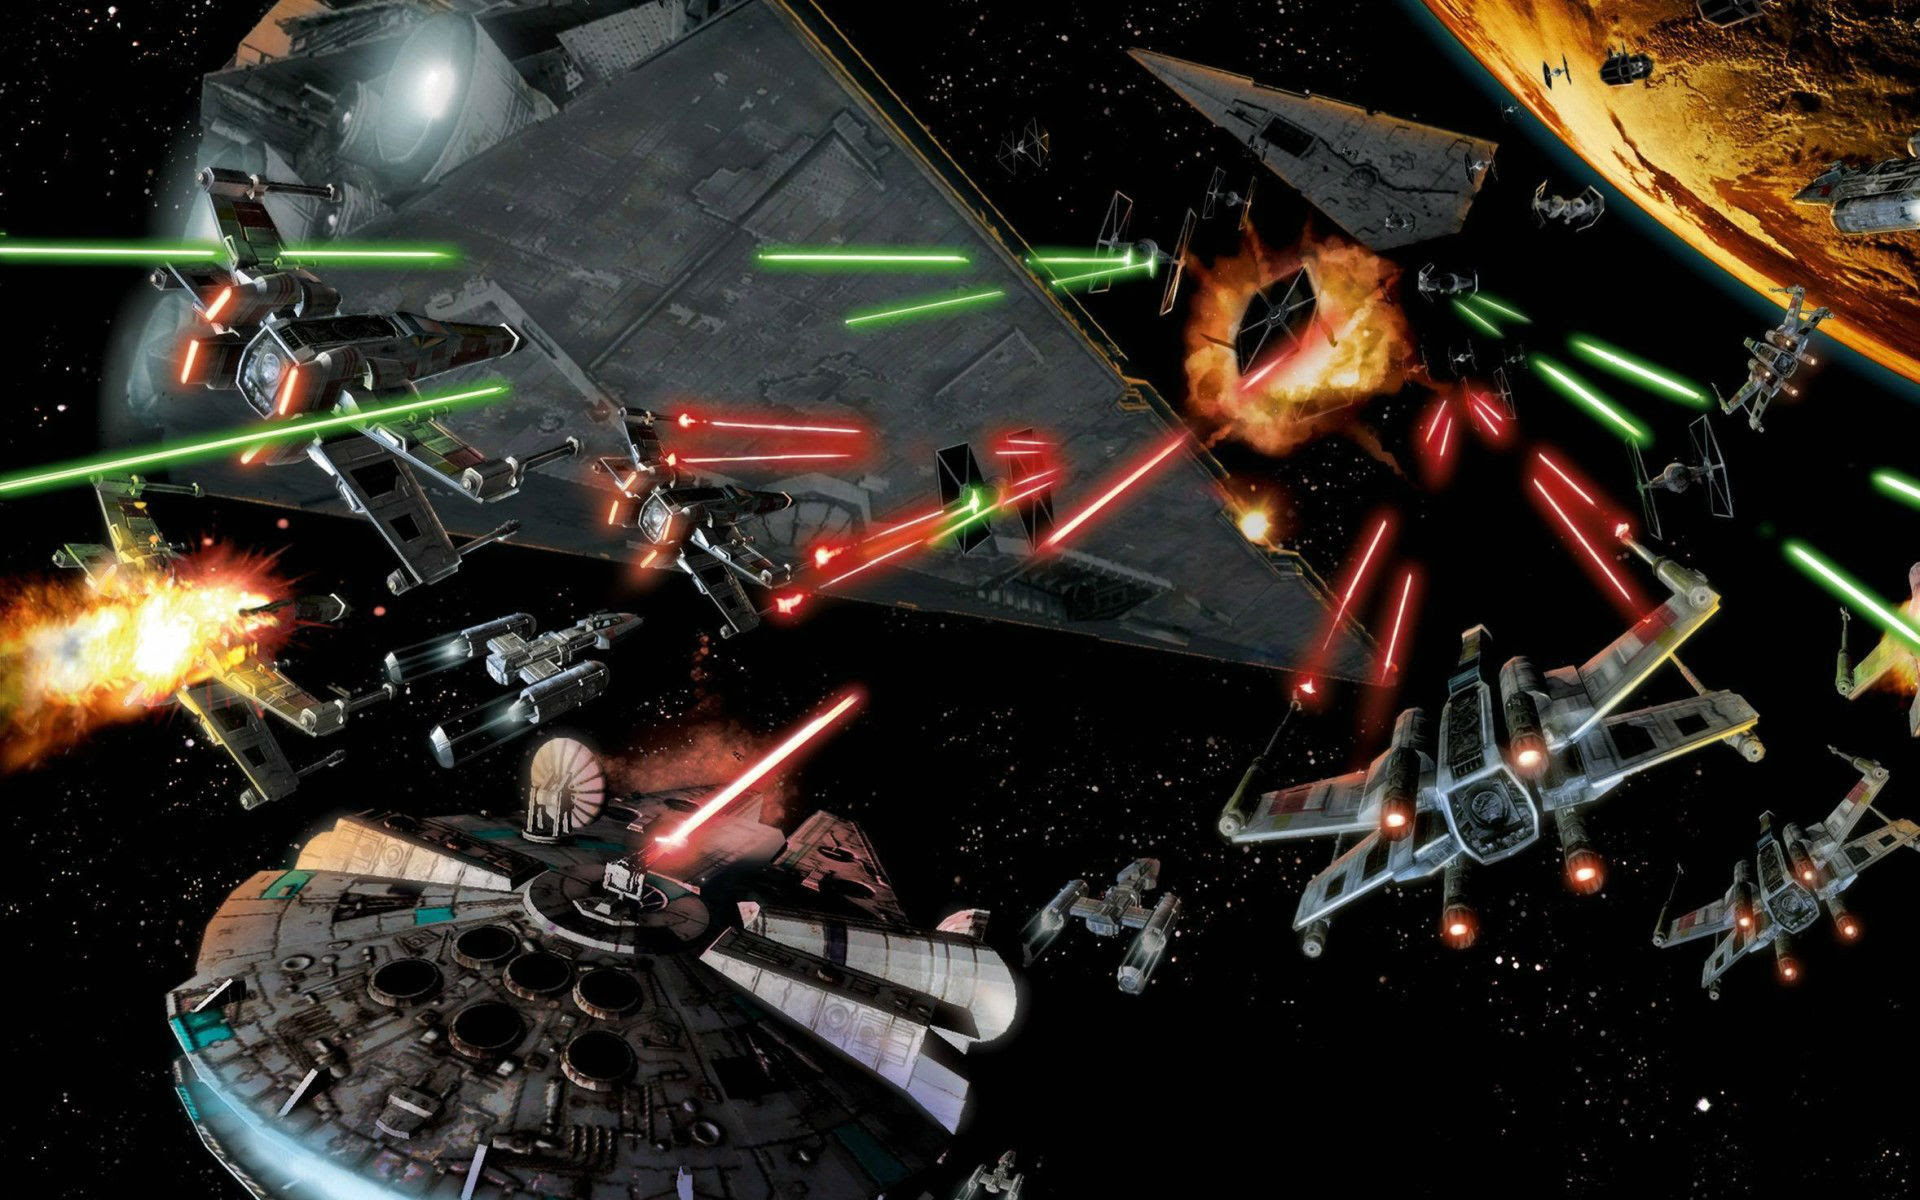 Star Wars Space Battle Wallpaper 61 Images